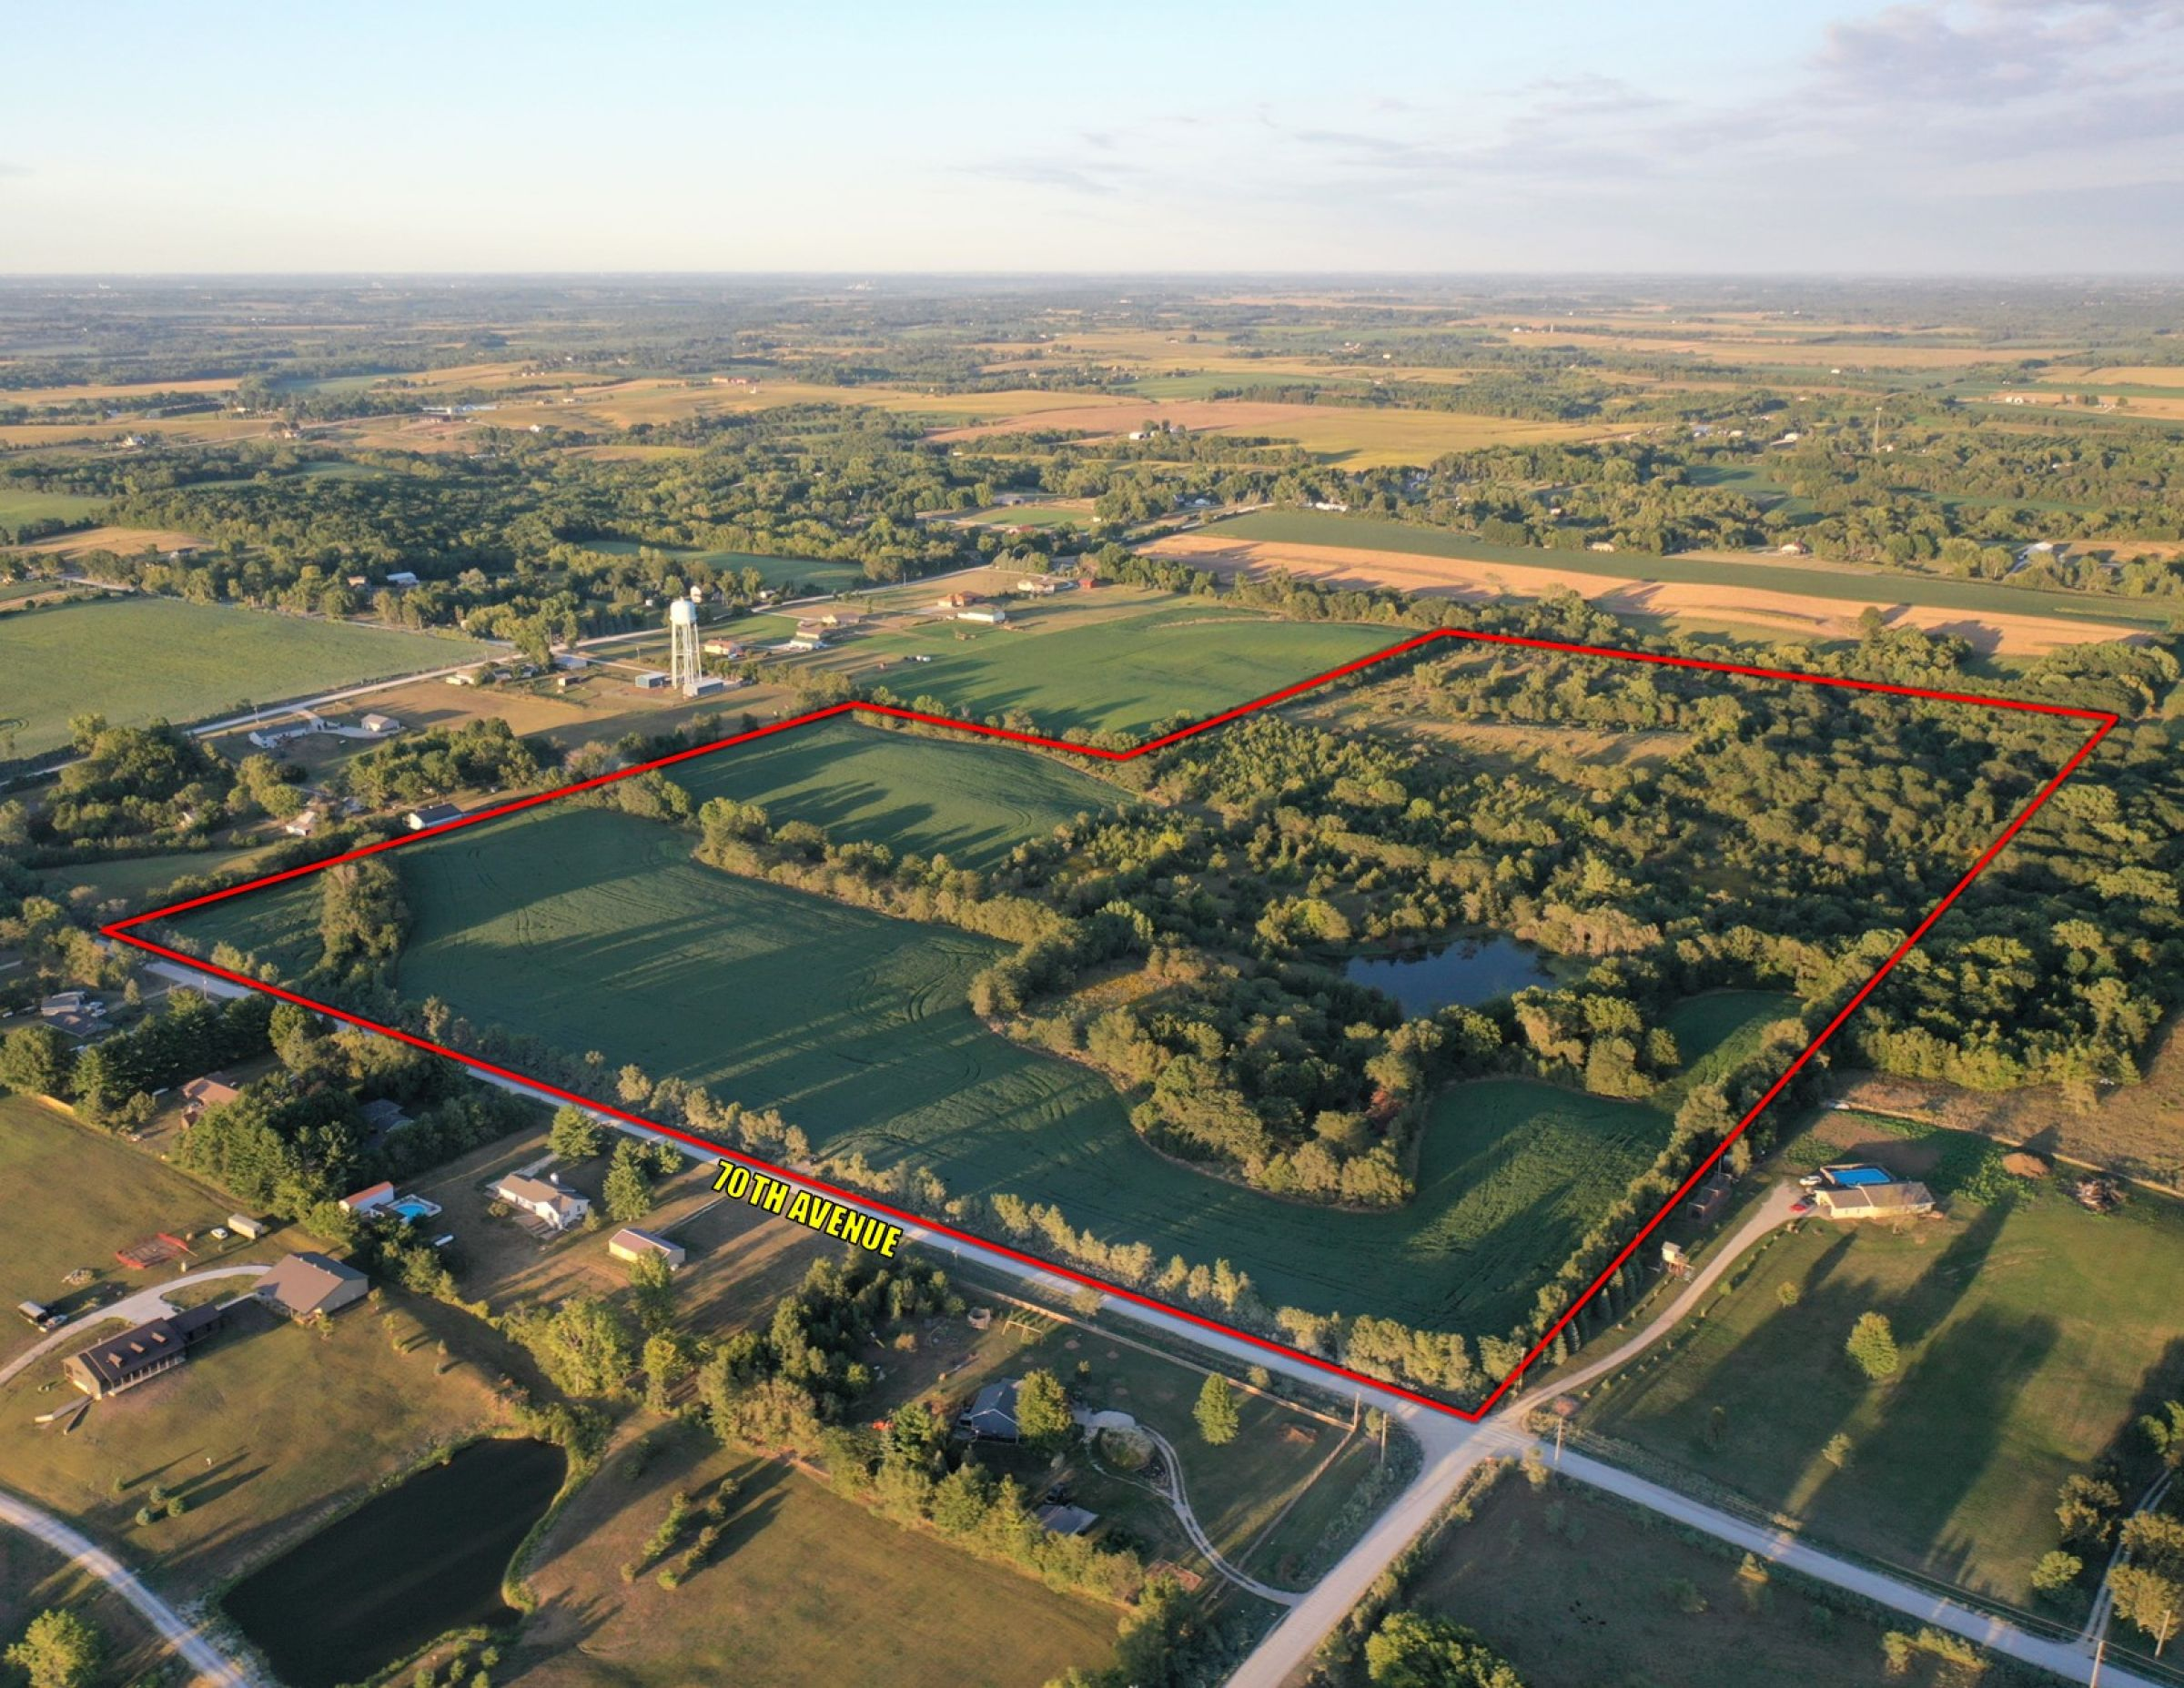 auctions-warren-county-iowa-84-acres-listing-number-15156-1-2020-09-02-050207.jpg